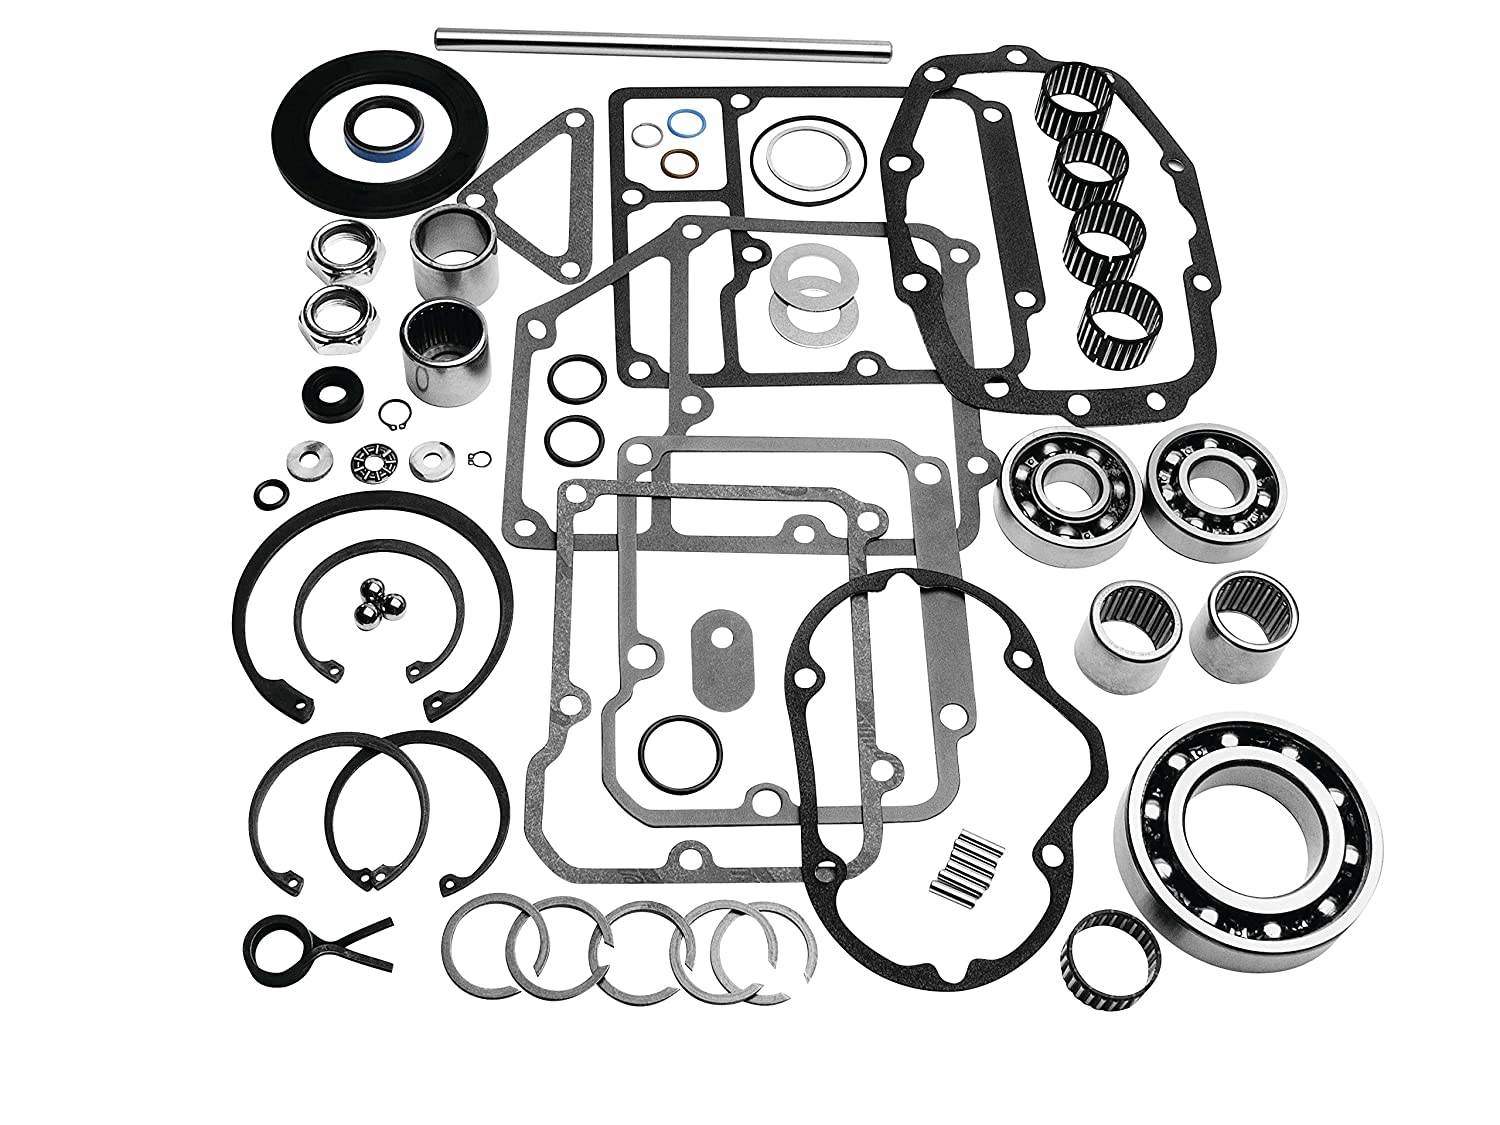 Jims Fat 5 Transmission Rebuild Kit Gasket & Seal Kit 892